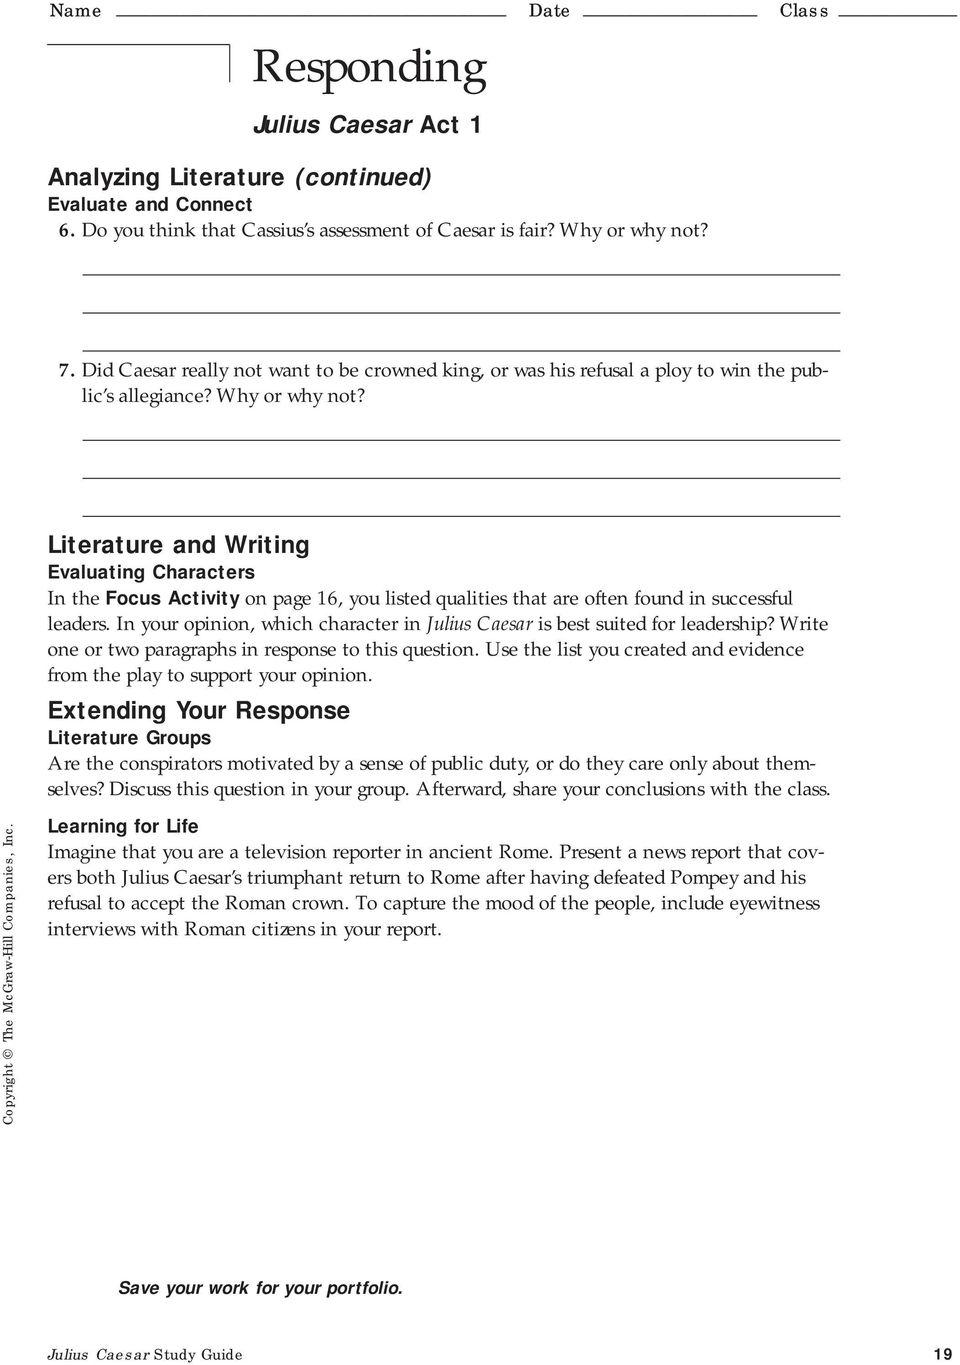 Julius Caesar Study Guide 19. Literature and Writing Evaluating Characters  In the Focus Activity on page 16, you listed qualities